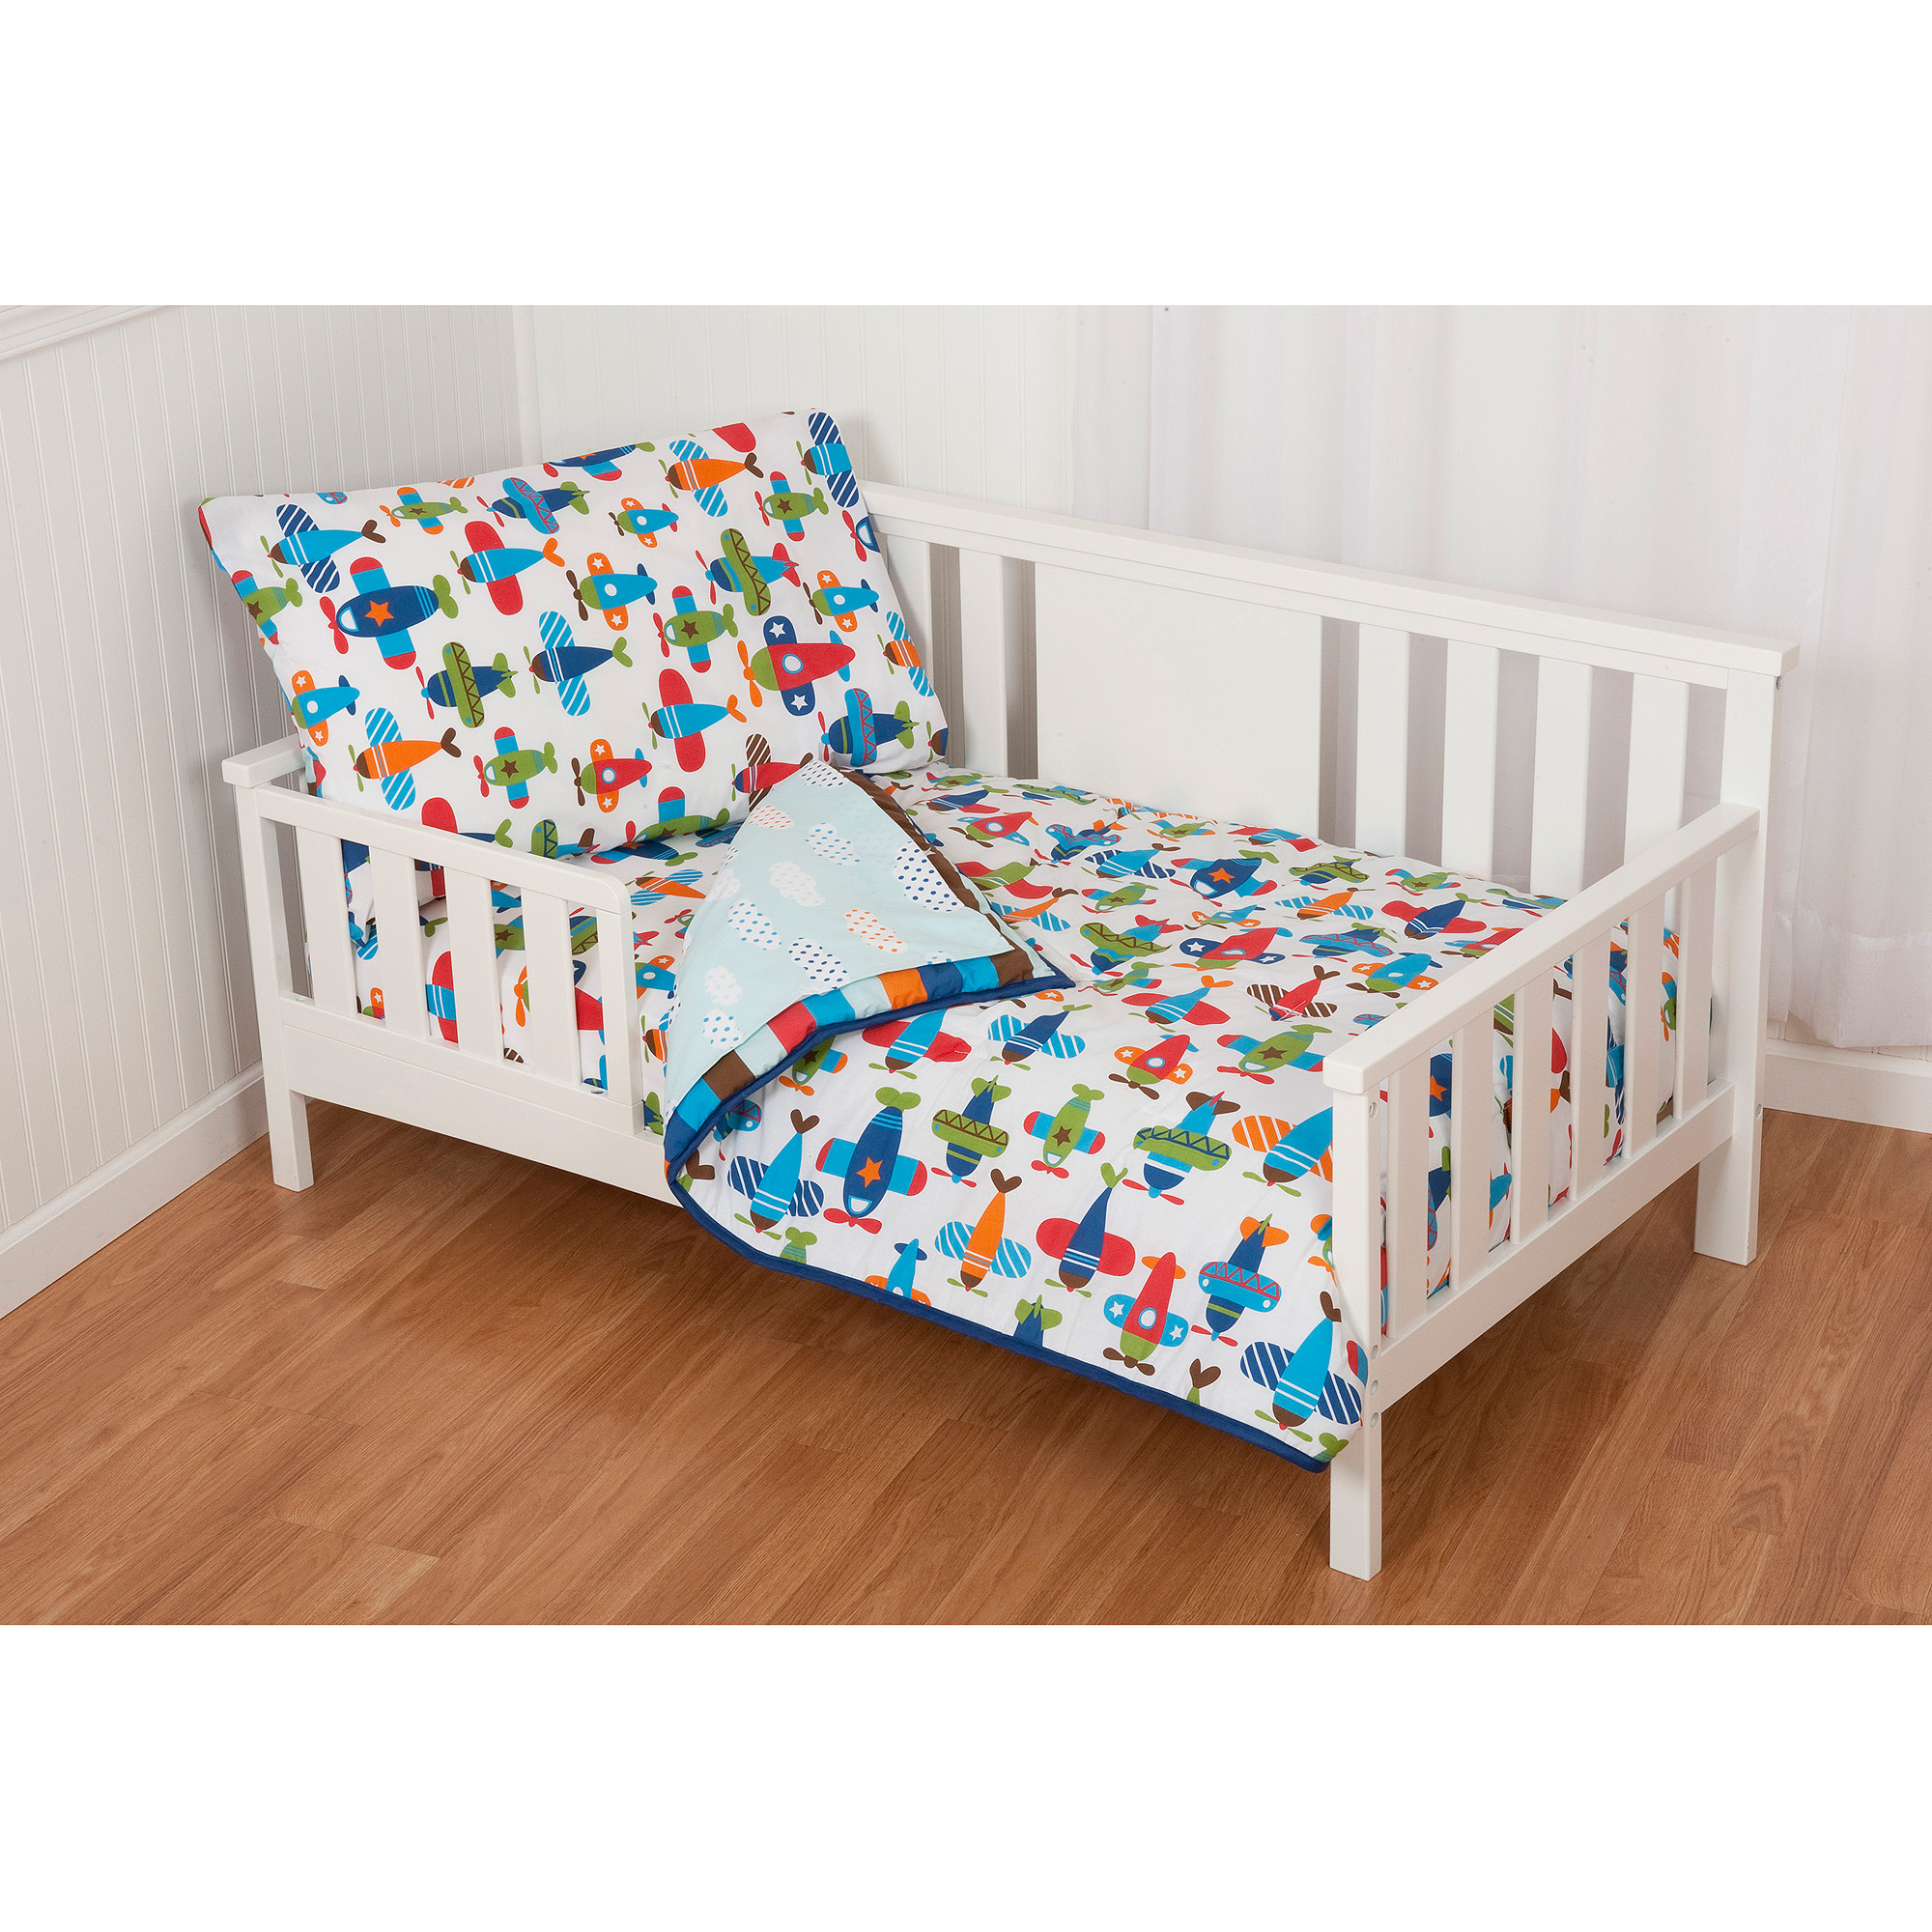 Sumersault Taking Flight 4-Piece Toddler Bedding Set by Sumersault